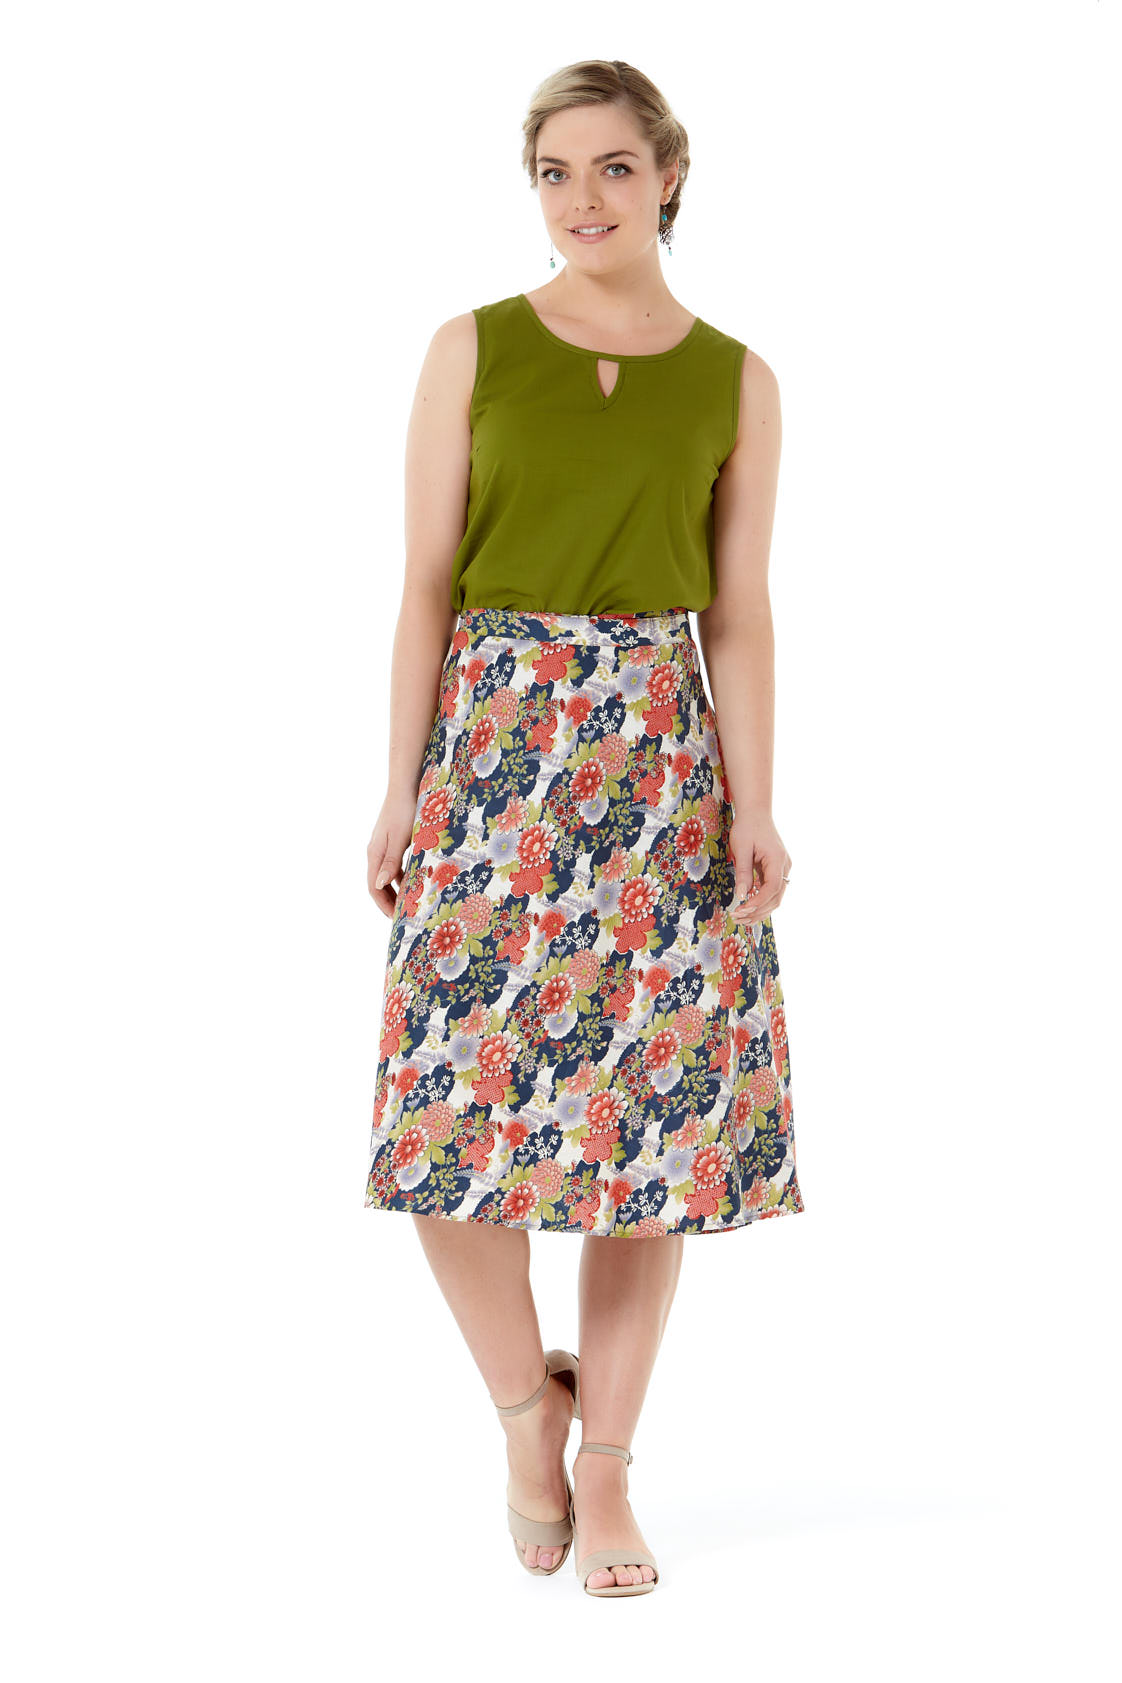 Beth Cotton Wrap Skirt – Japanese Meadow Print